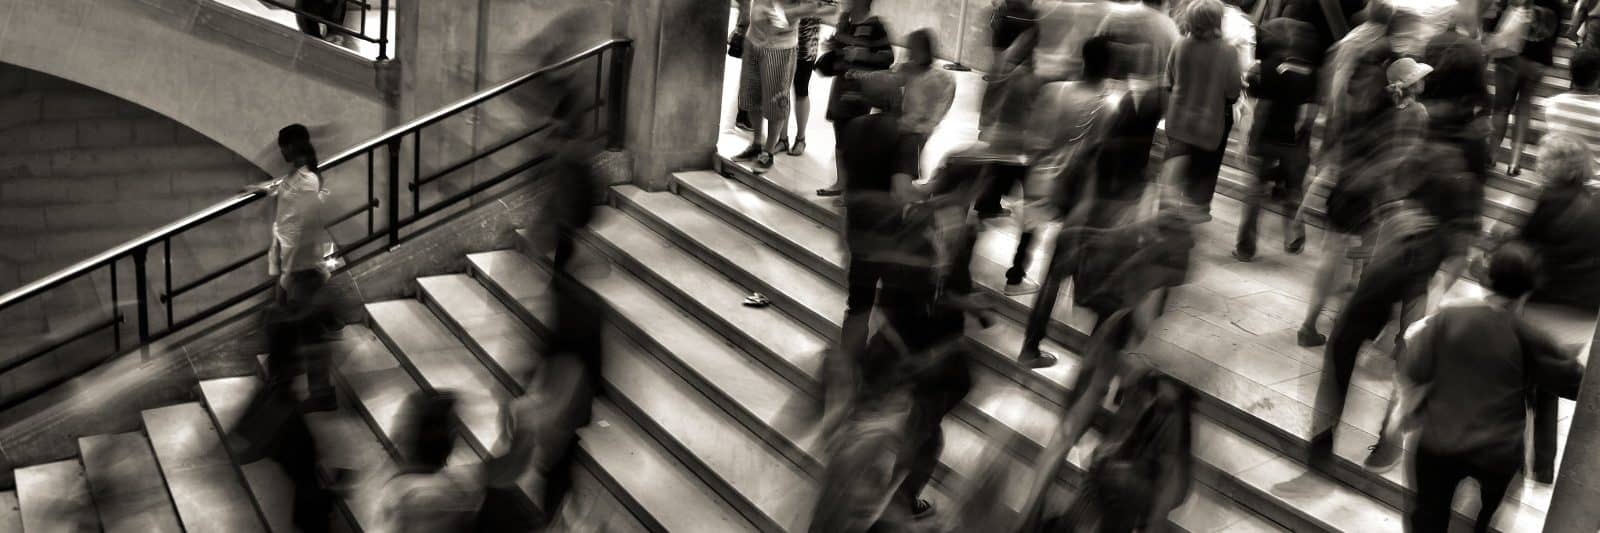 Long exposure of a busy stairwell in black and white